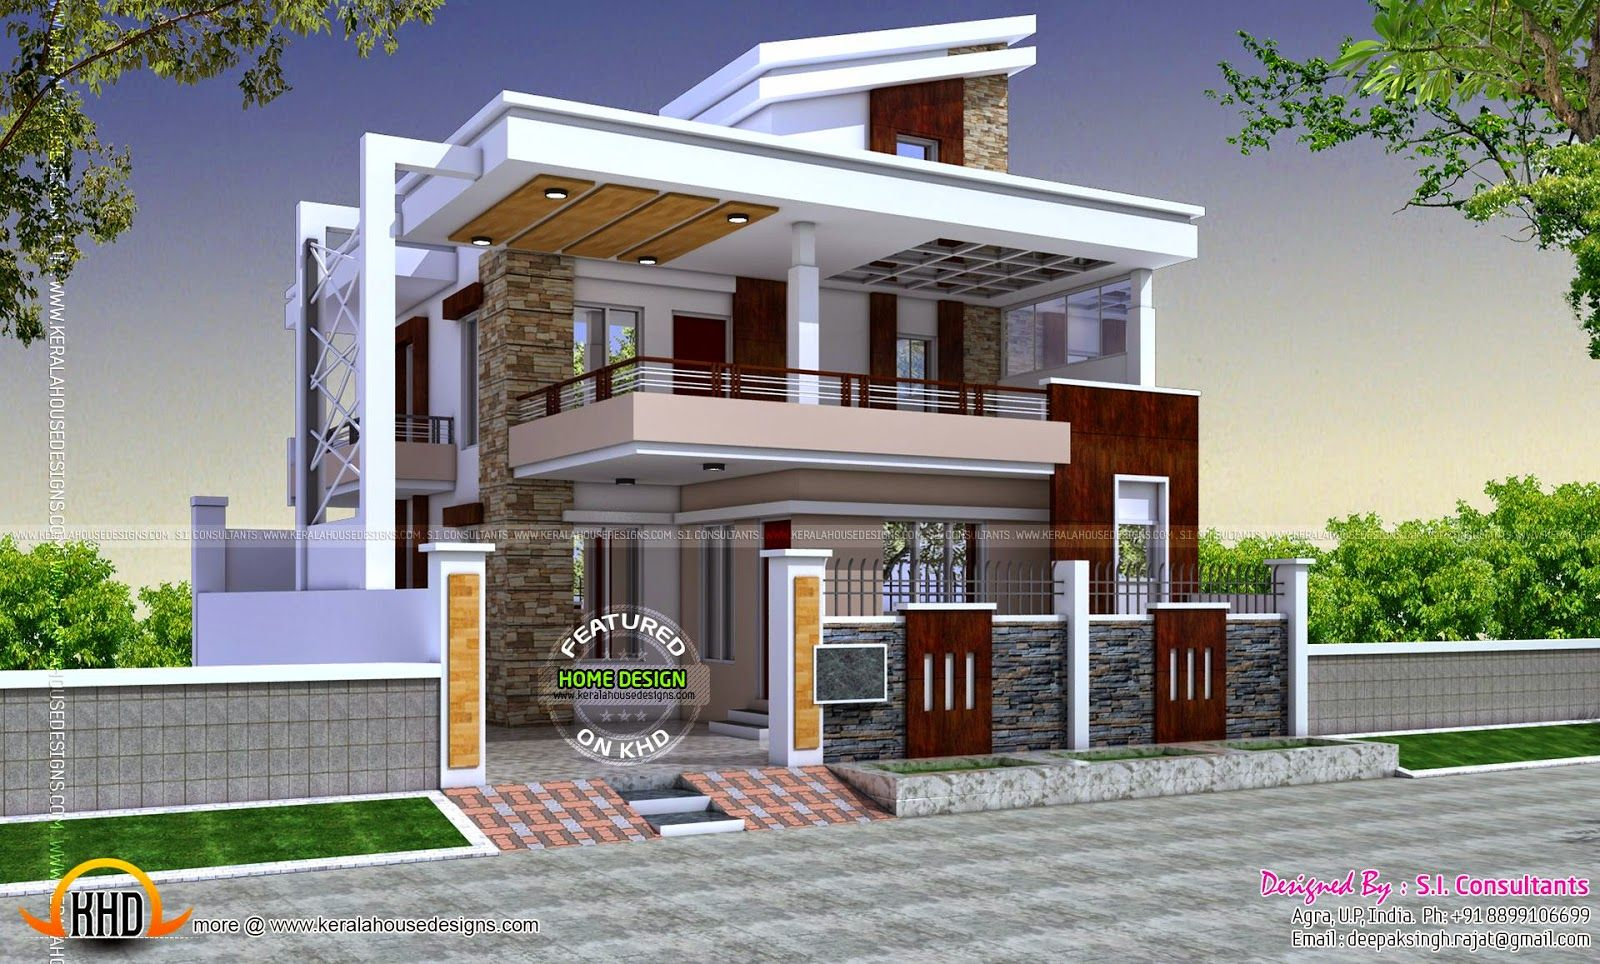 d03af665dee571a9dcf79ac2086cb7bf latest home plans and designs in india modern home design photos on latest exterior house - Home Design In India